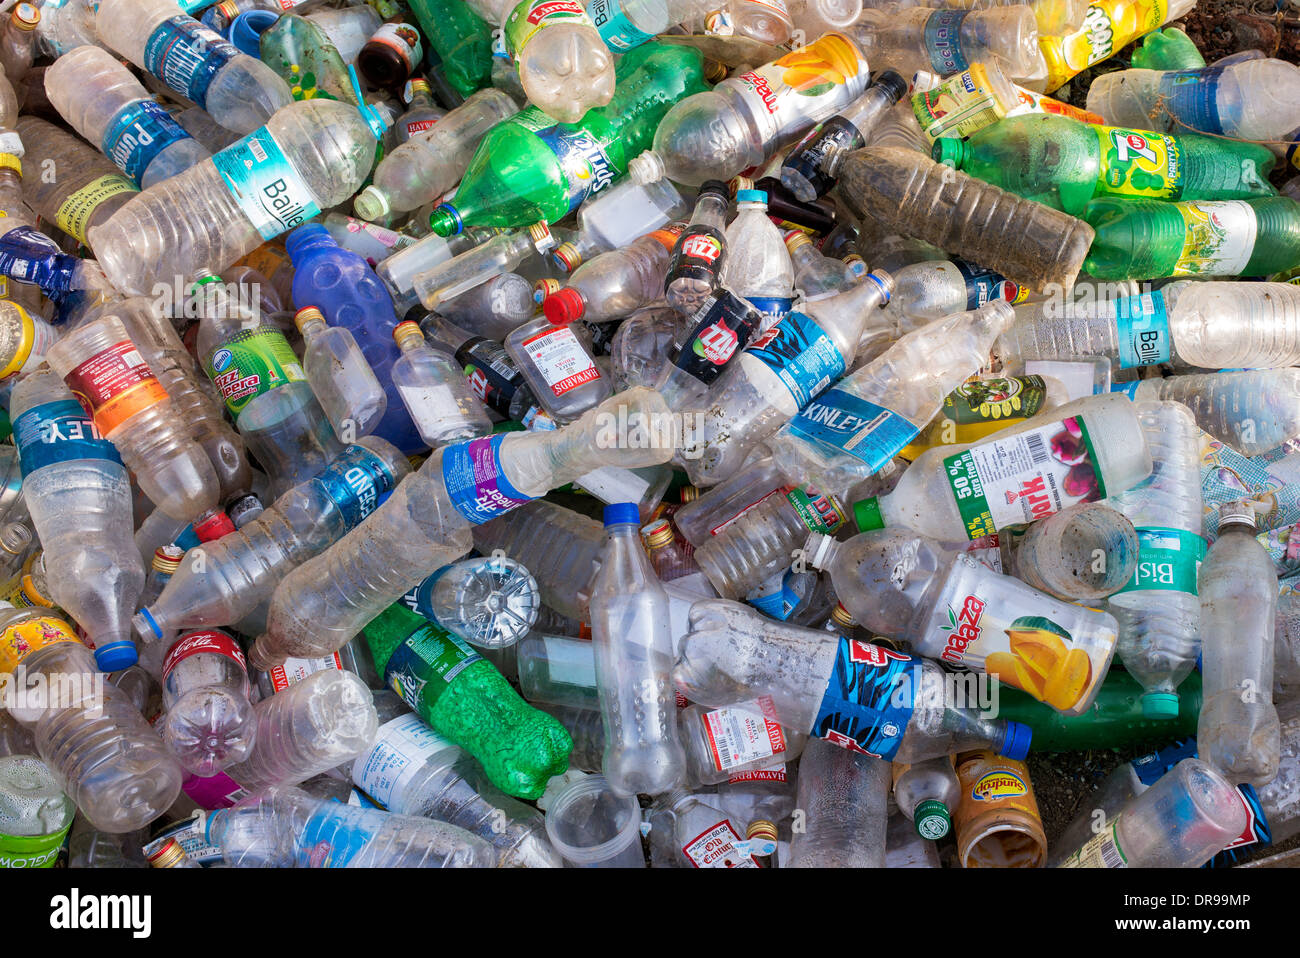 Empty Plastic drinking bottles dumped for recycling in India - Stock Image